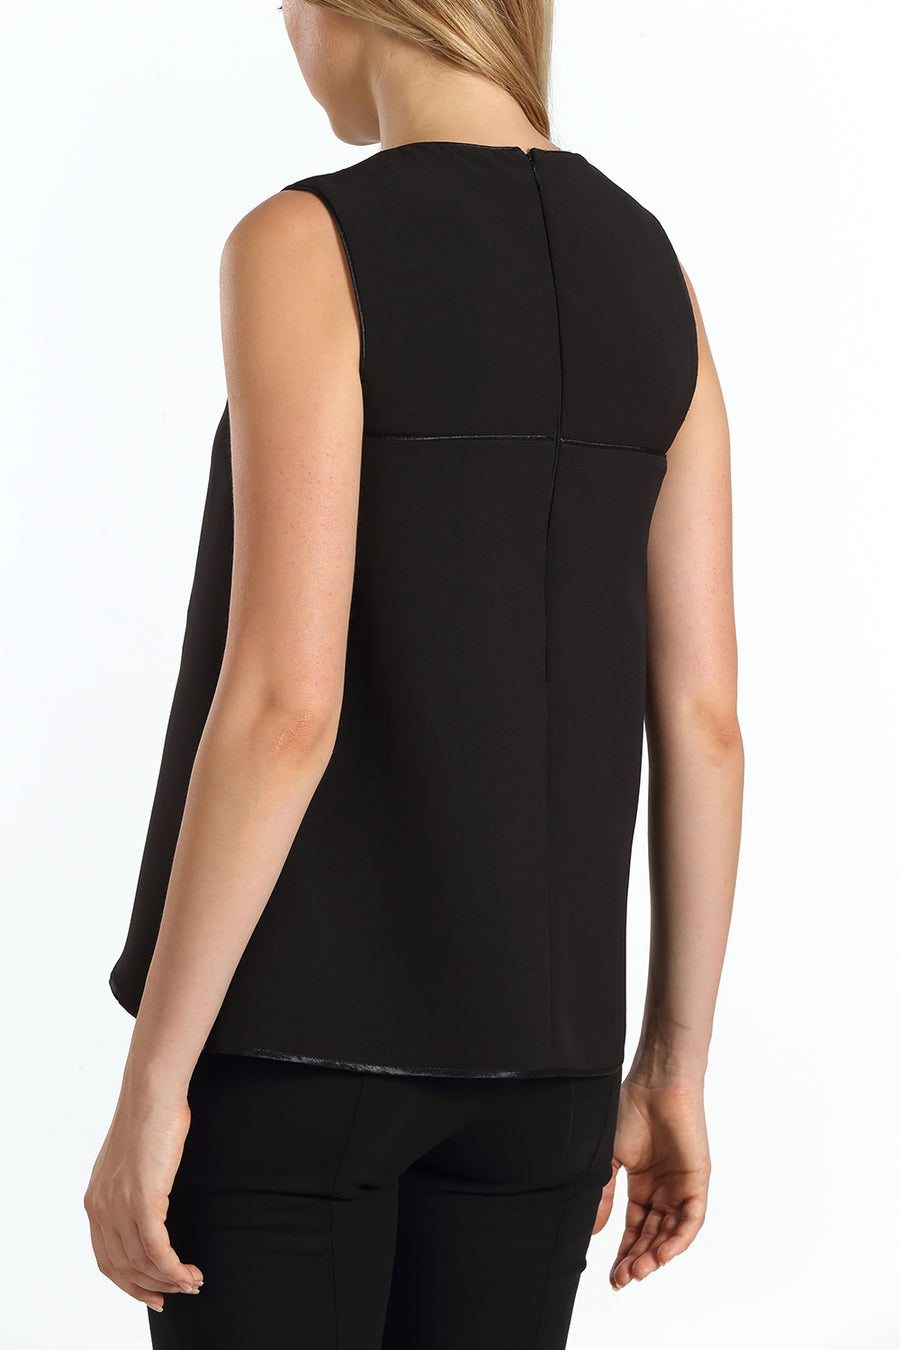 Sleeveless Binded Top | Black